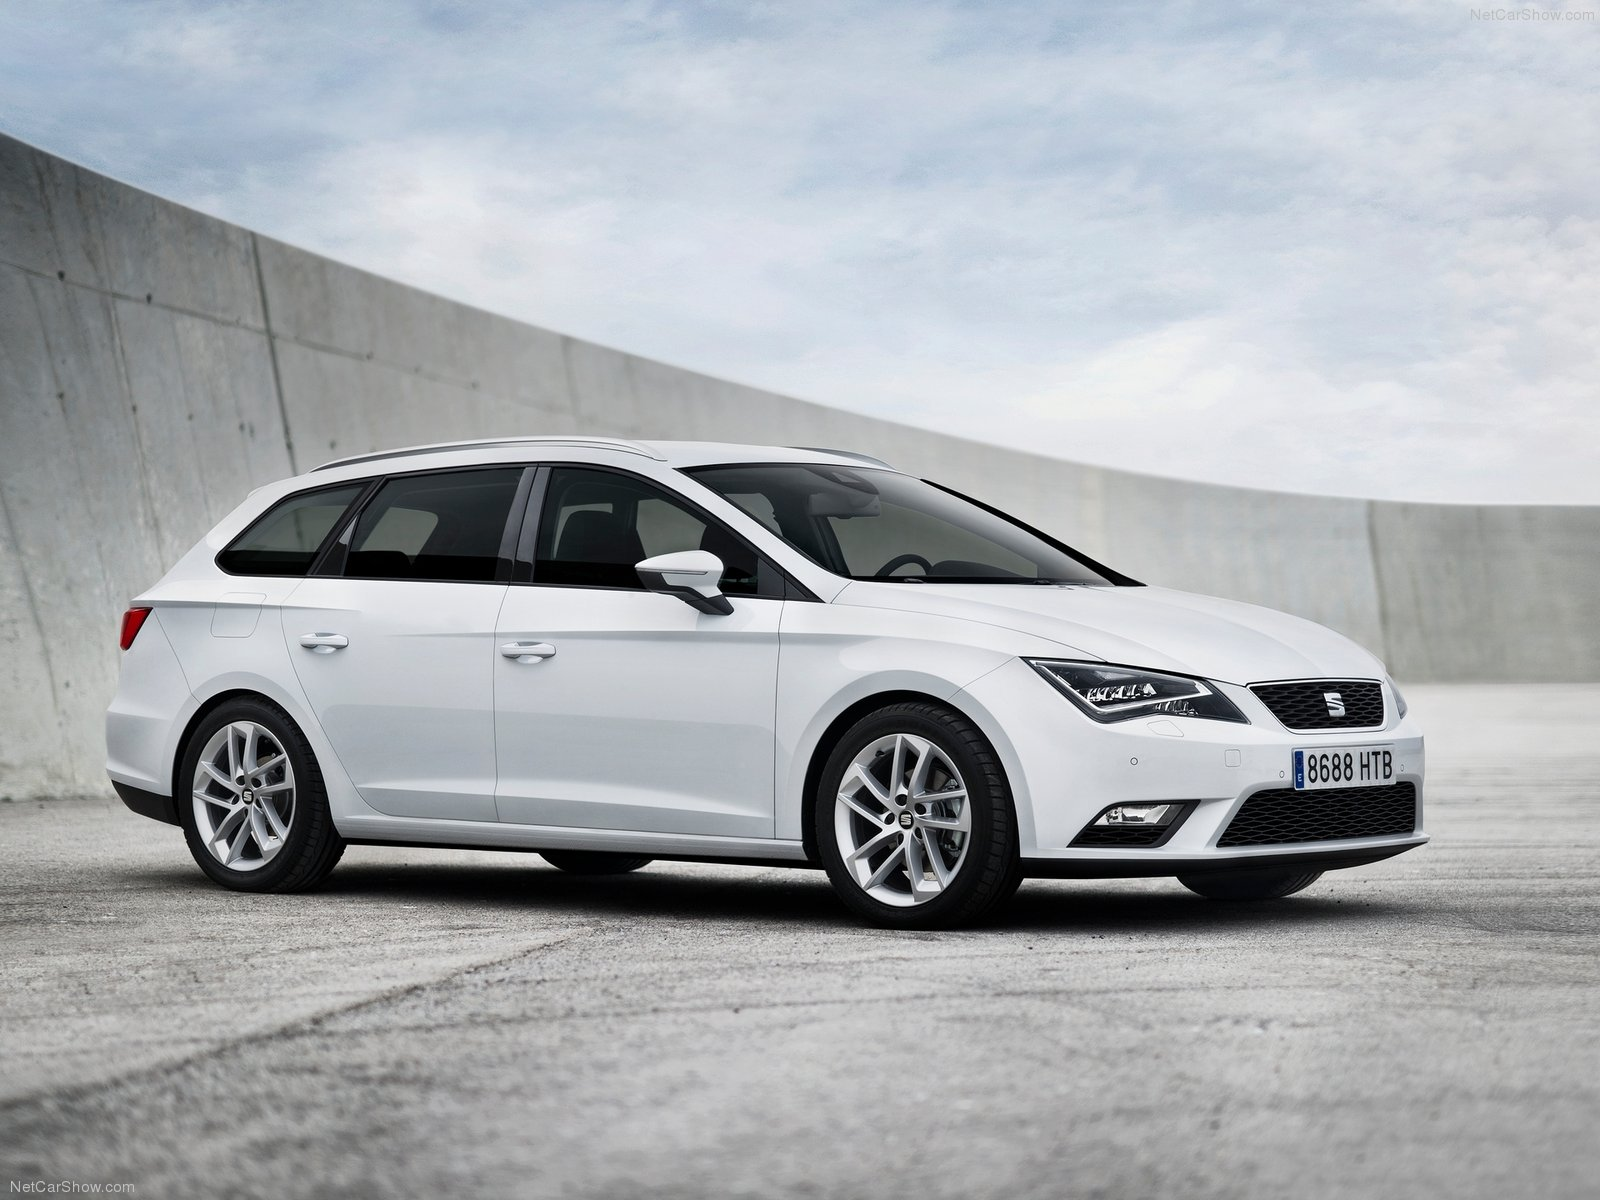 seat leon st photos photogallery with 55 pics. Black Bedroom Furniture Sets. Home Design Ideas